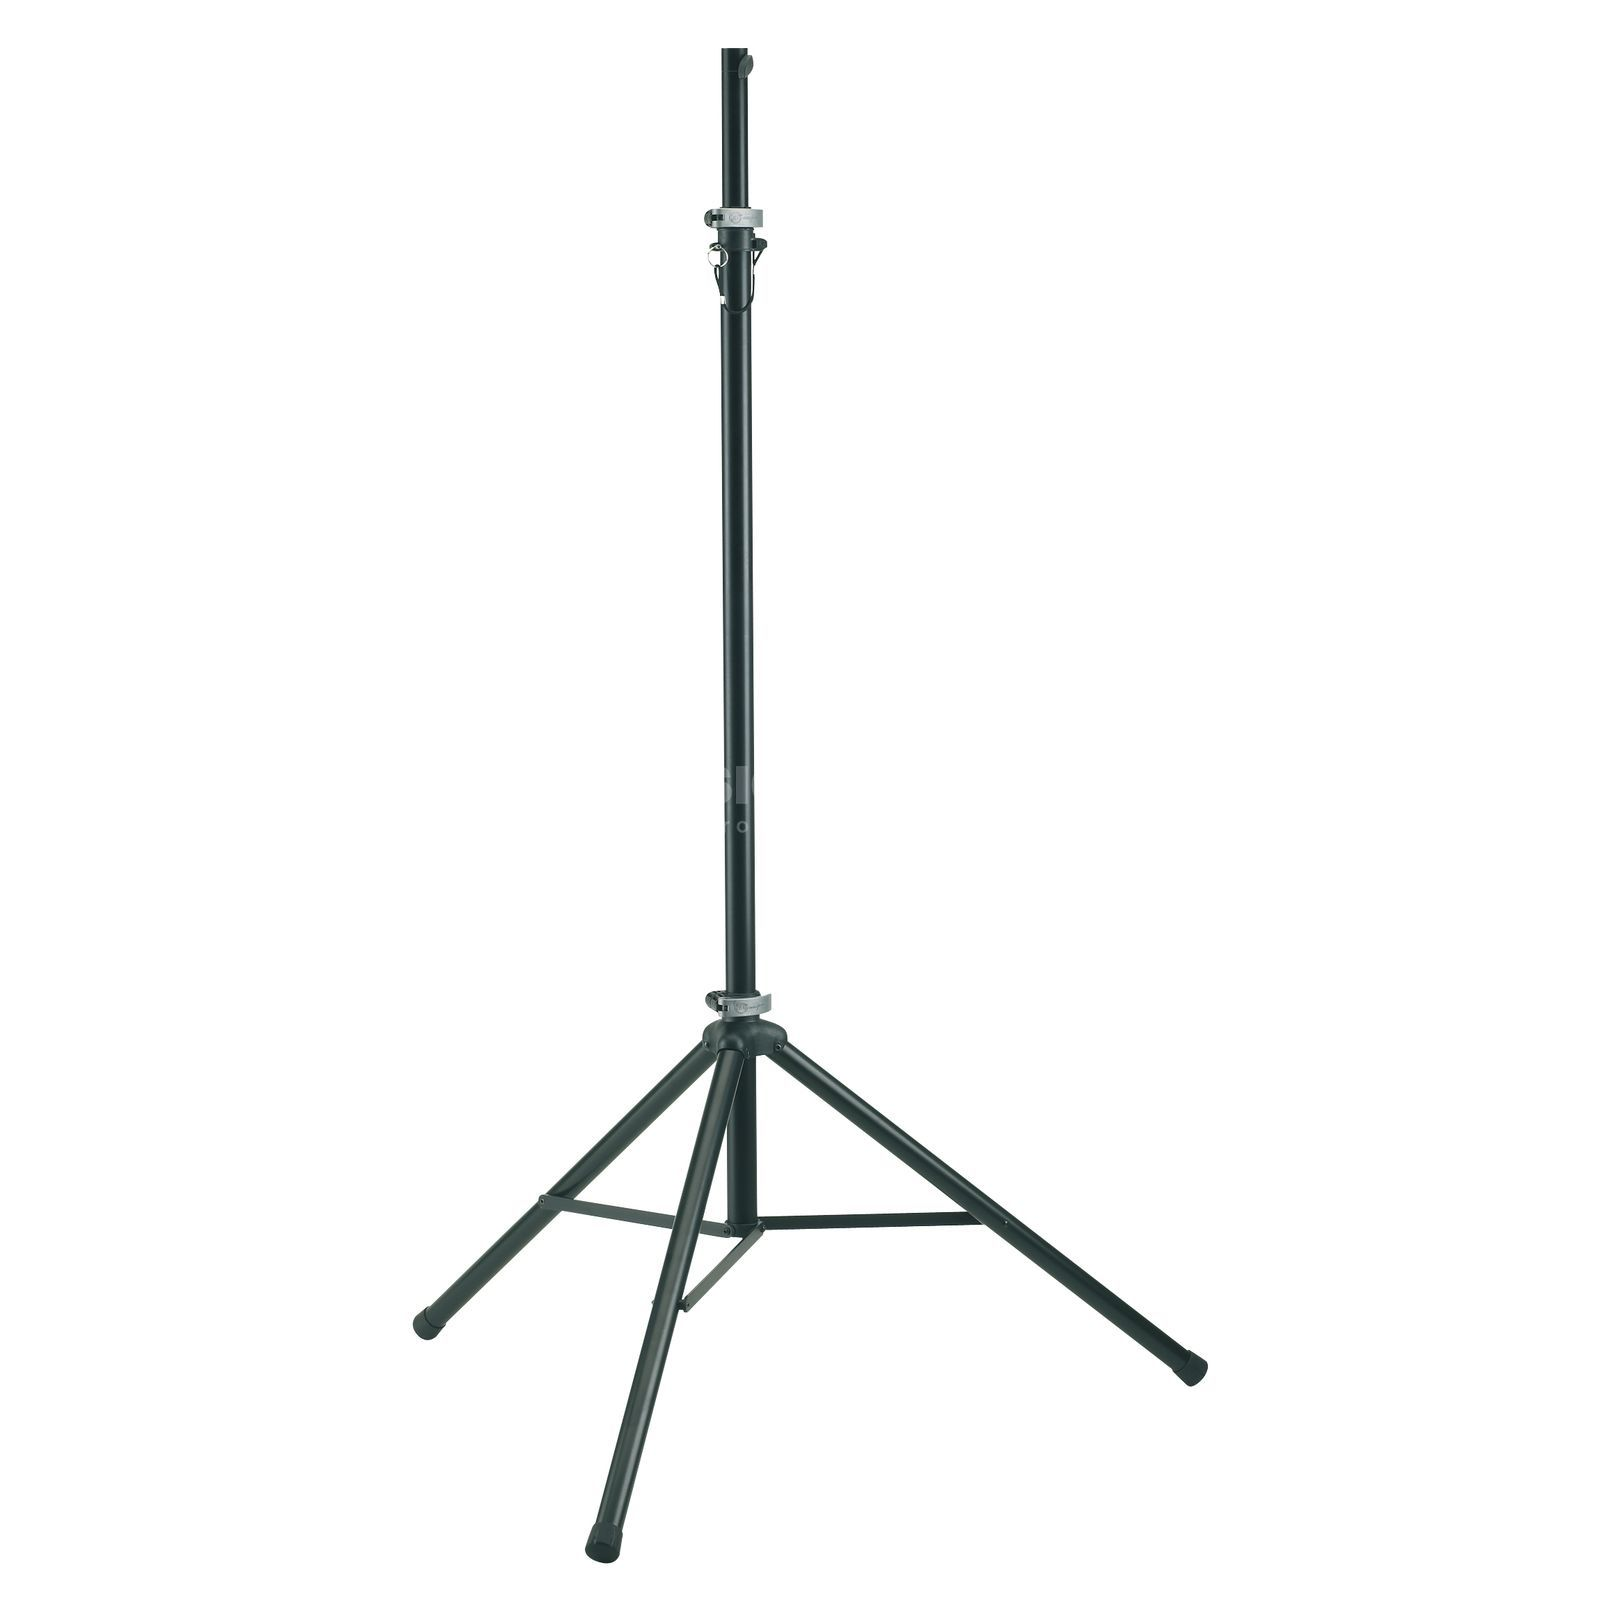 König & Meyer 24625 Light Stand -  Alu Black anodized H1800/3220mm Produktbillede